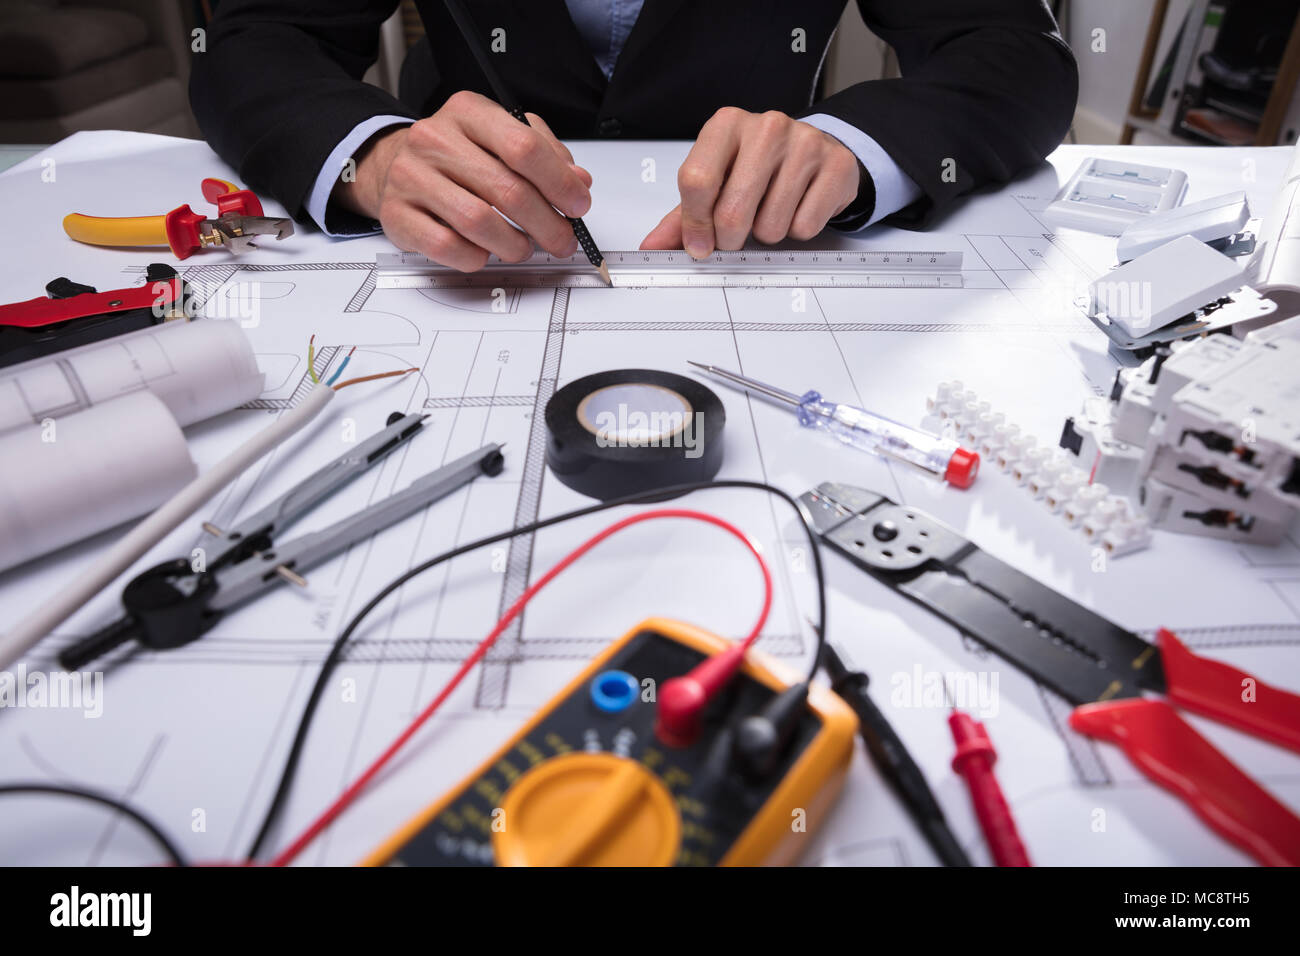 Close-up Of Various Worktools In Front Of Architecture's Hand Drawing Blueprint - Stock Image